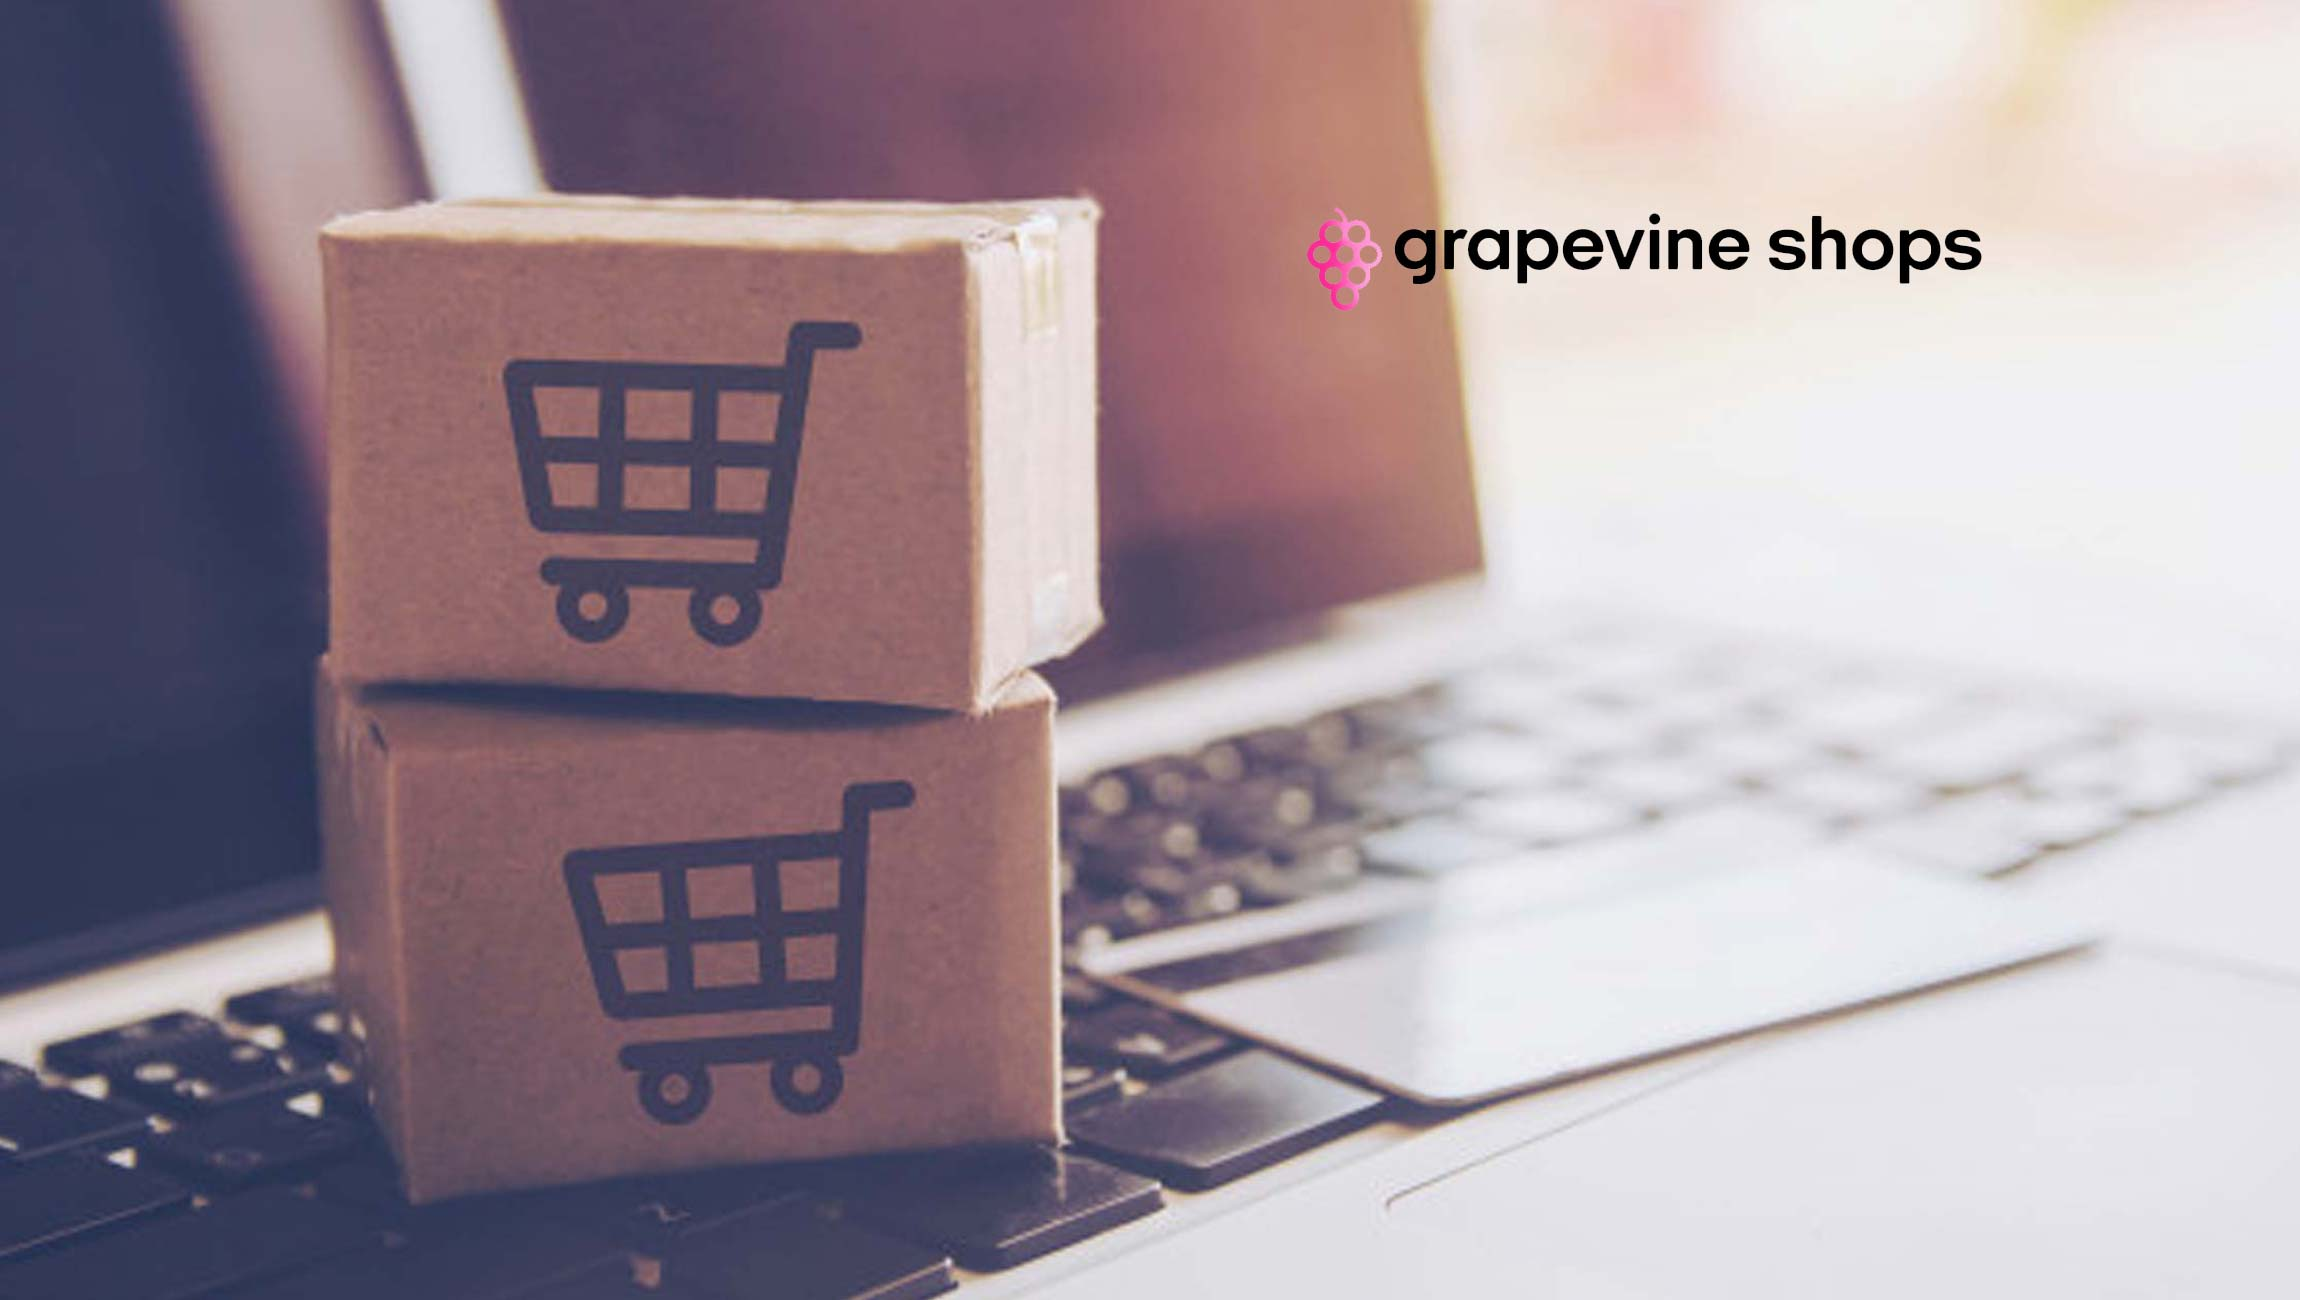 Grapevine Village Launches Grapevine Shops, A Fully Digitally Integrated E-Commerce Marketplace 7